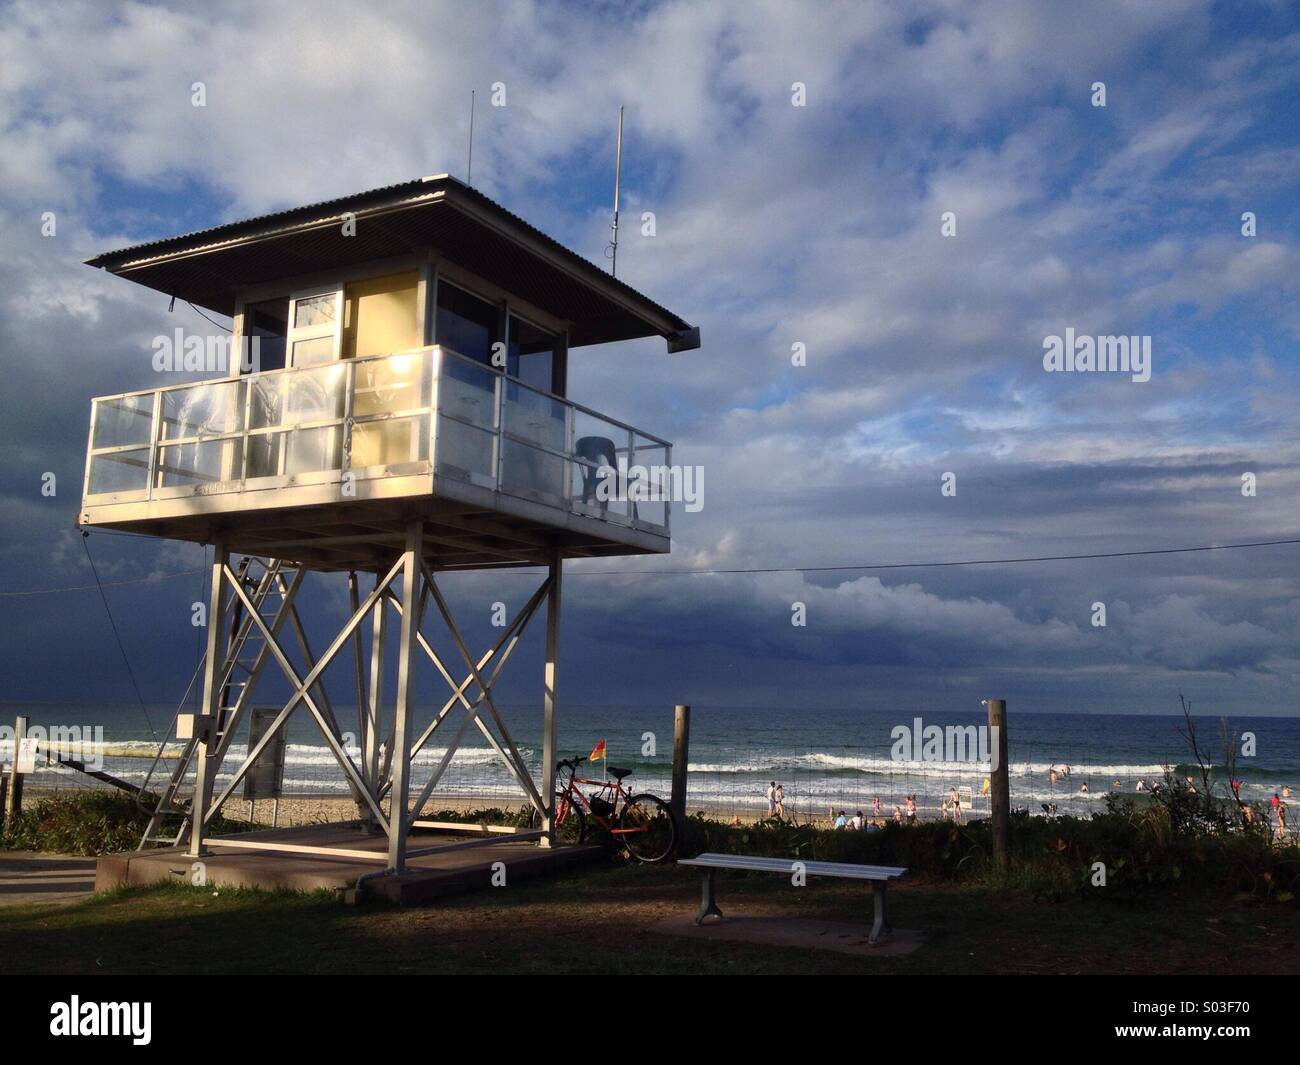 Life saver watch tower with approaching storm at the beach in Australia - Stock Image